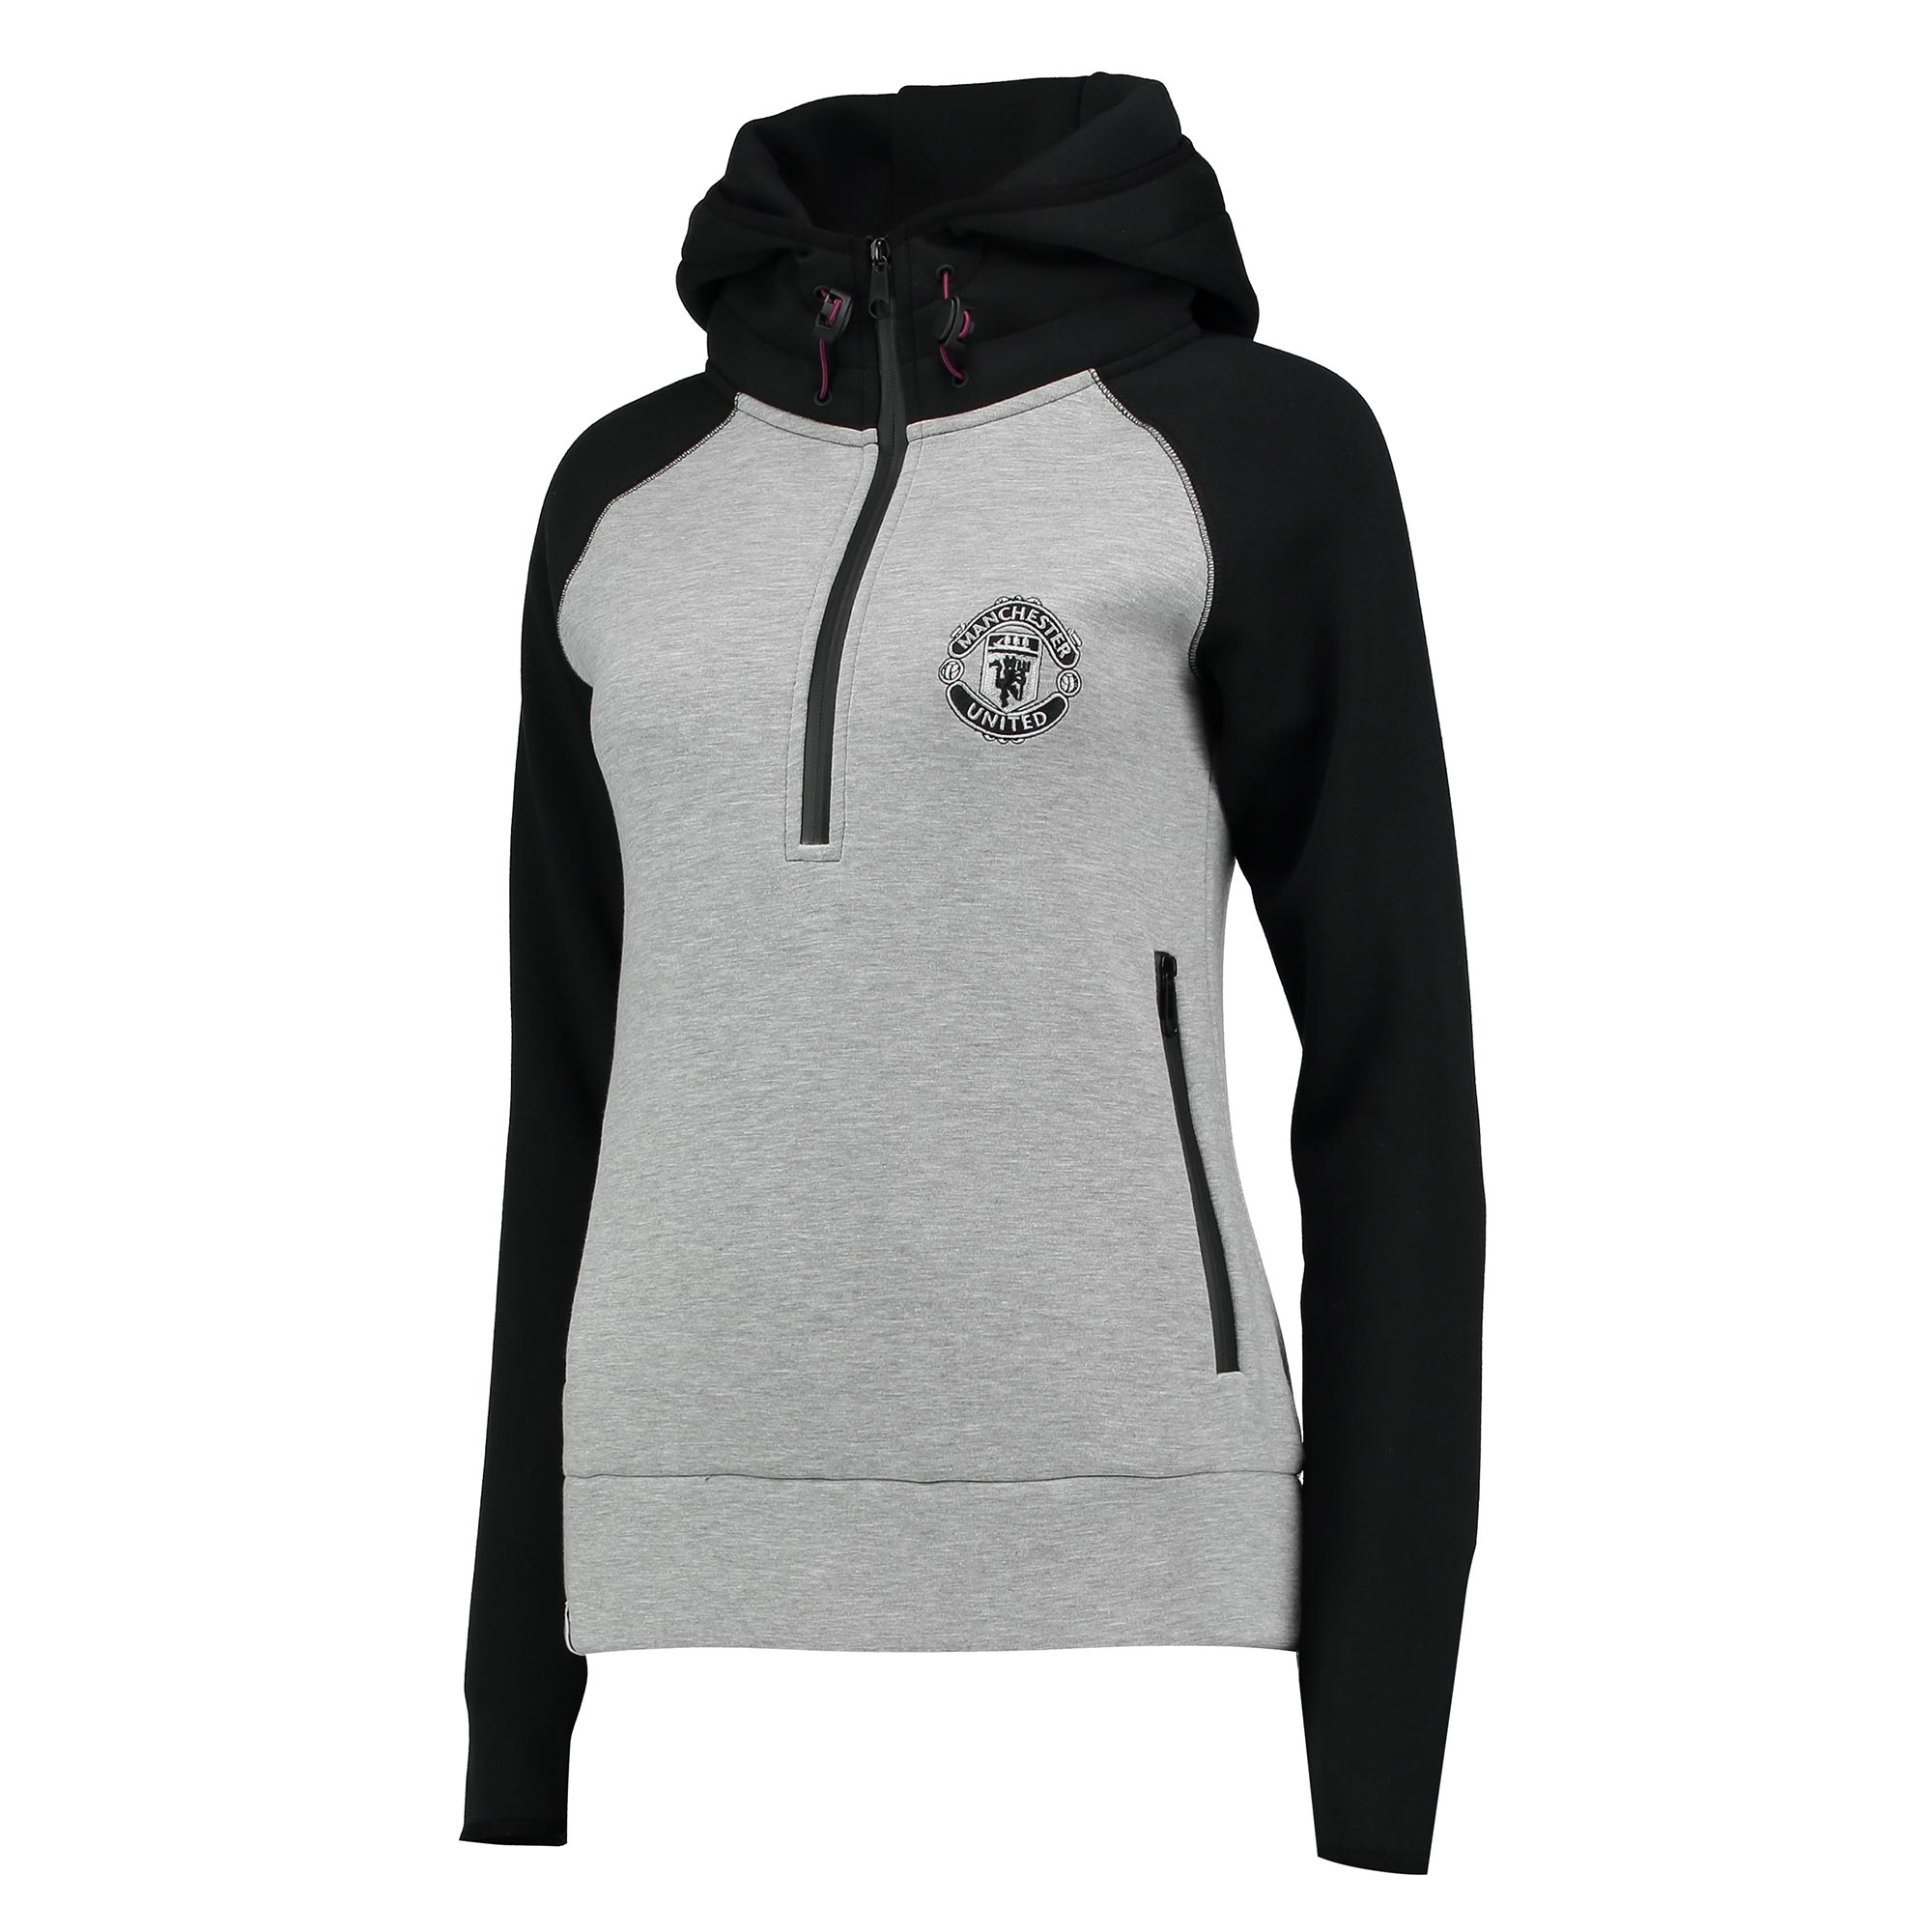 Manchester United 1/2 Zip Hoodie - Grey Marl/Black - Womens